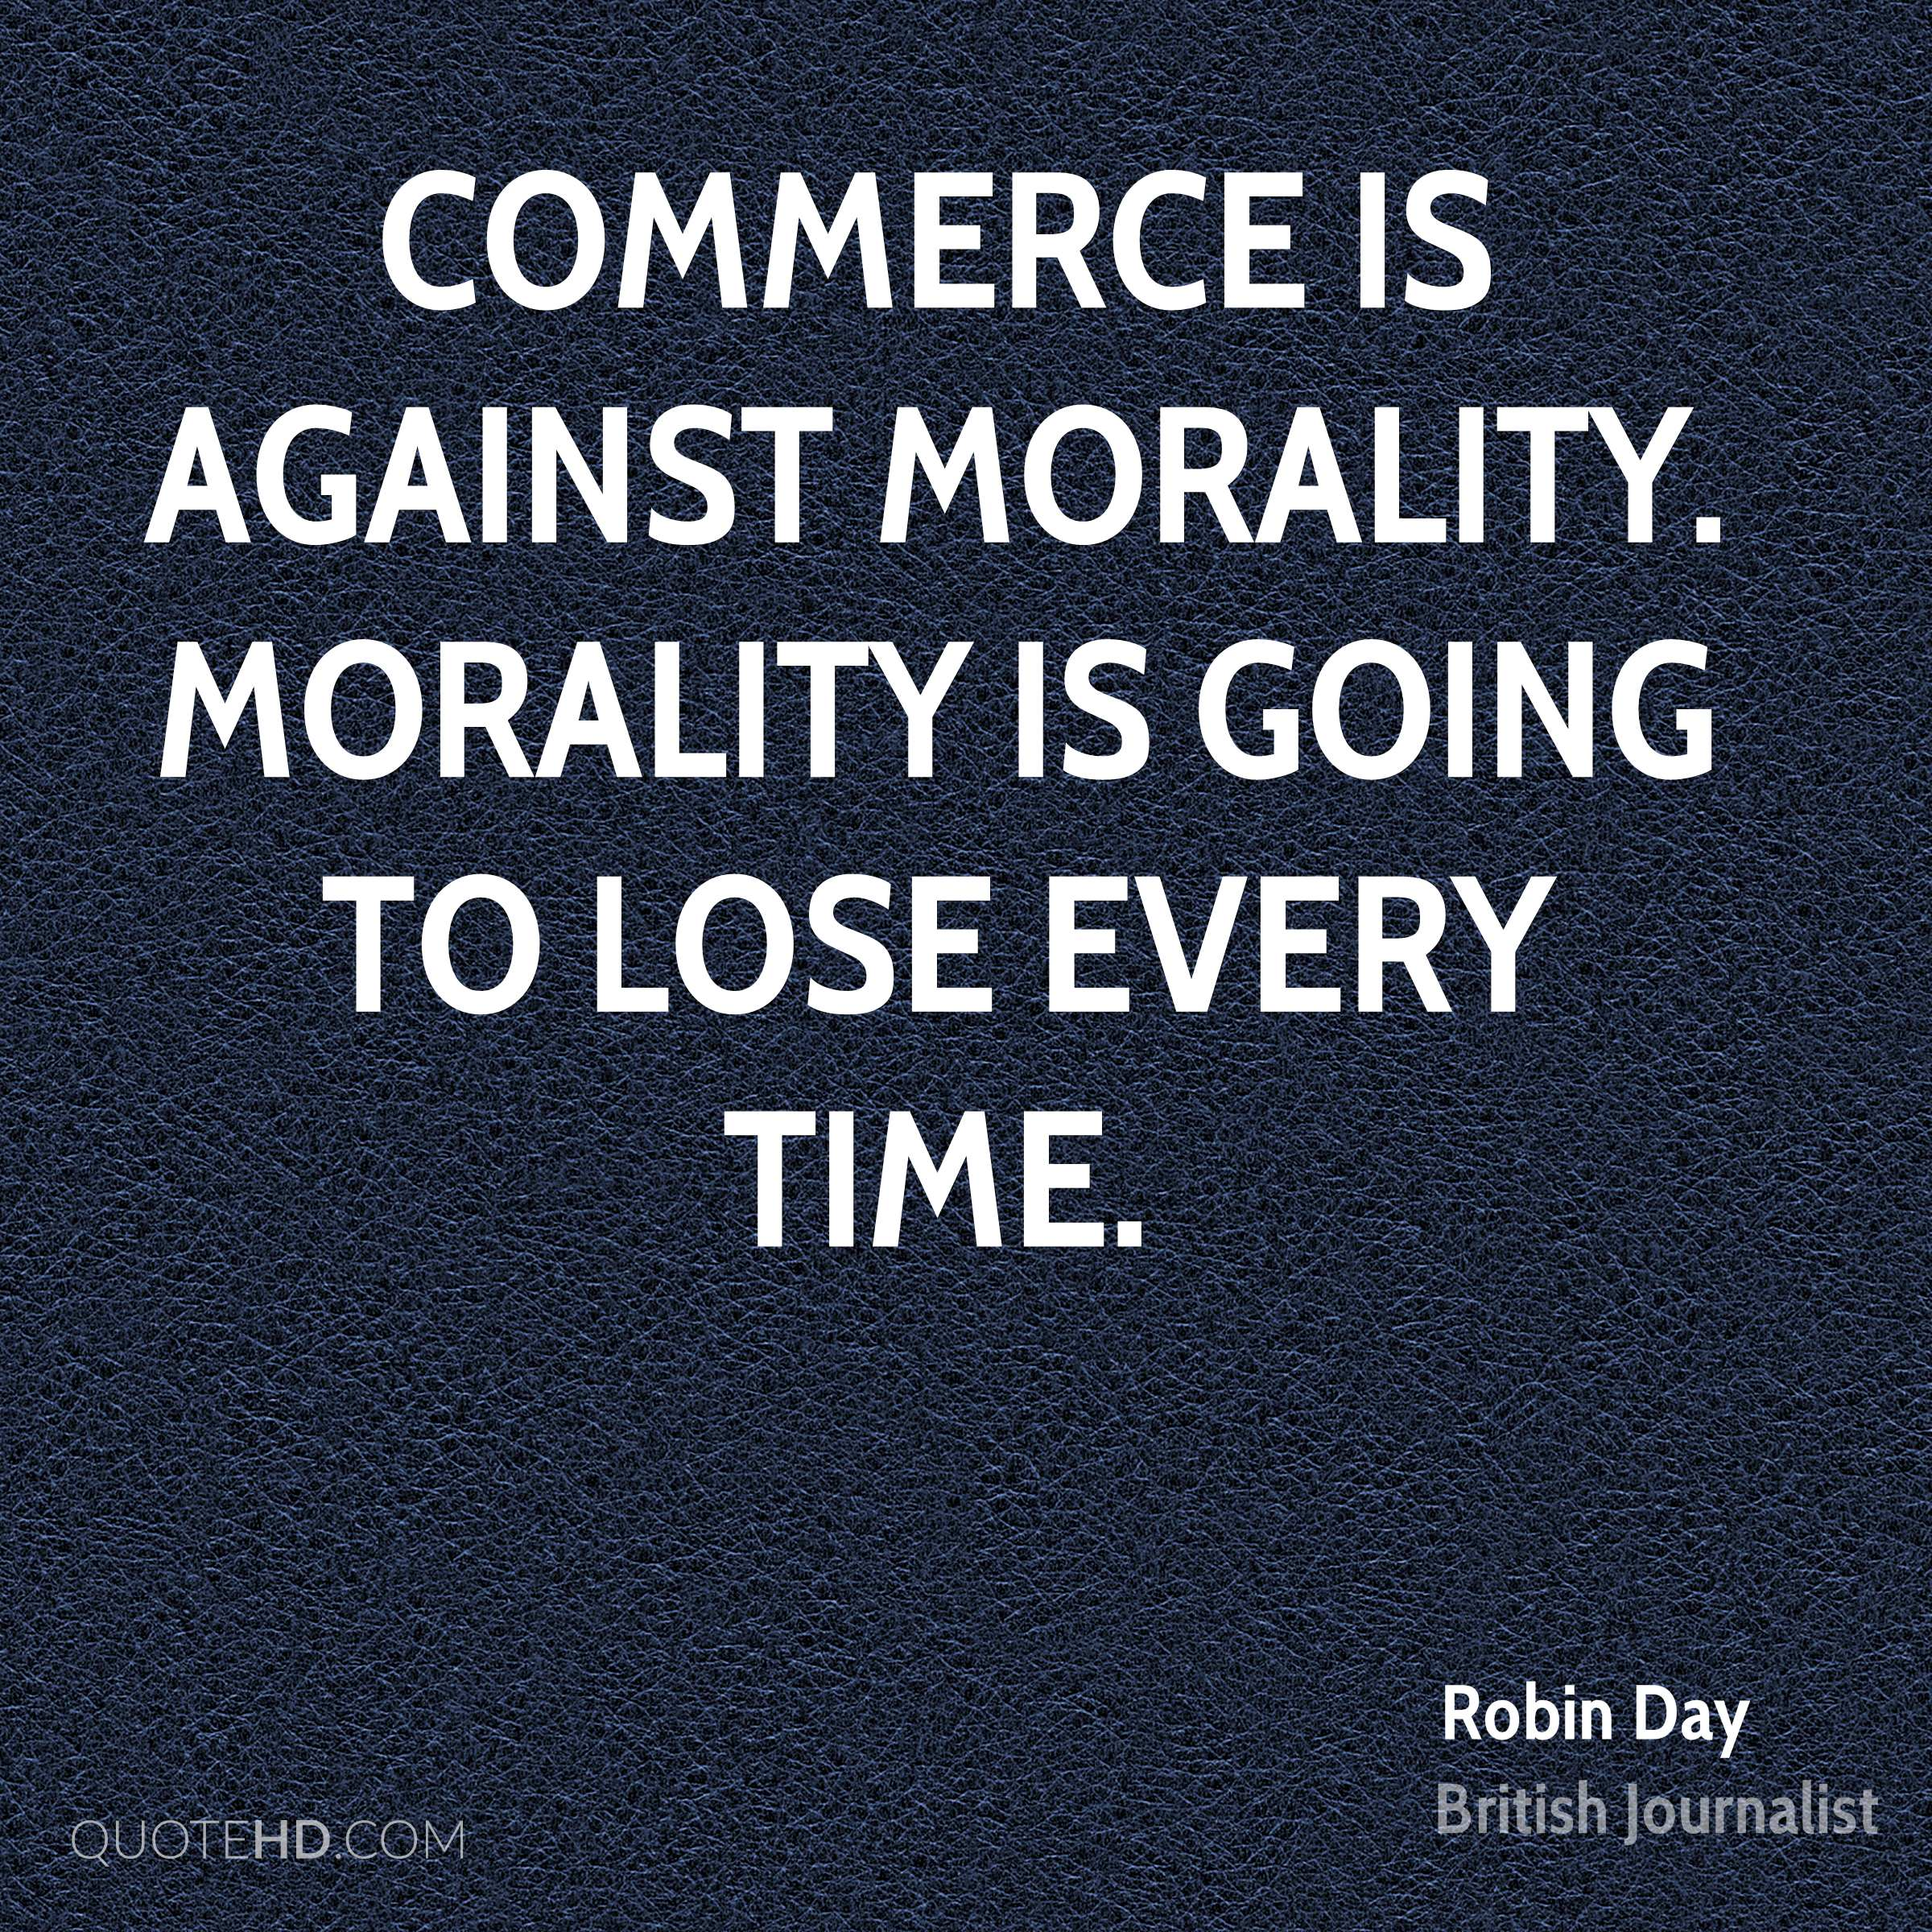 Commerce is against morality. Morality is going to lose every time.